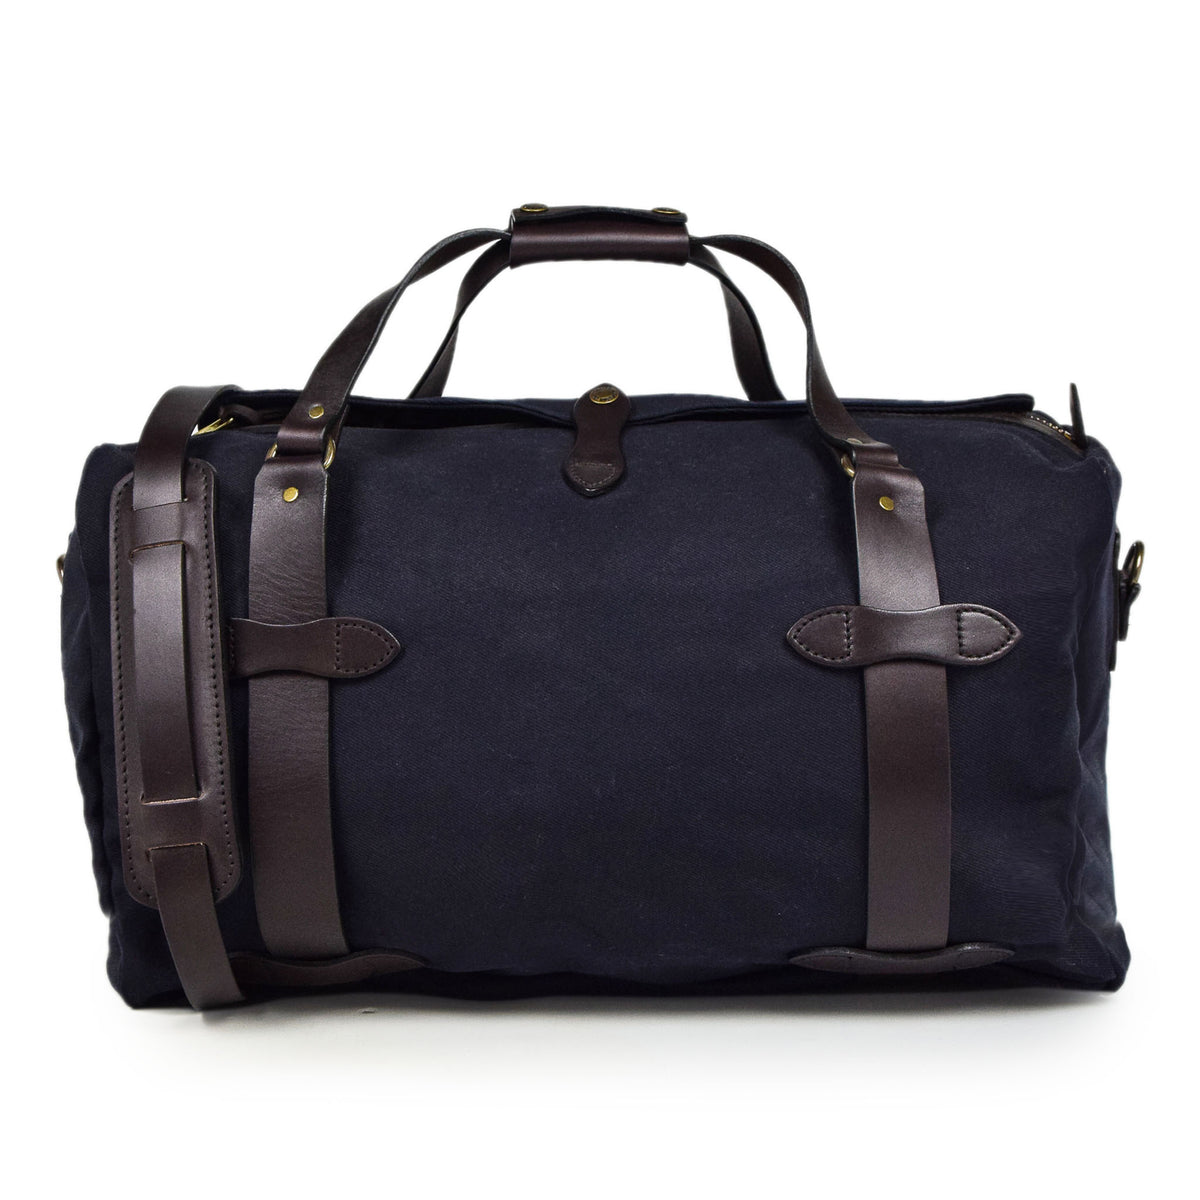 Filson Rugged Twill Carry-On Duffle Bag Navy Front